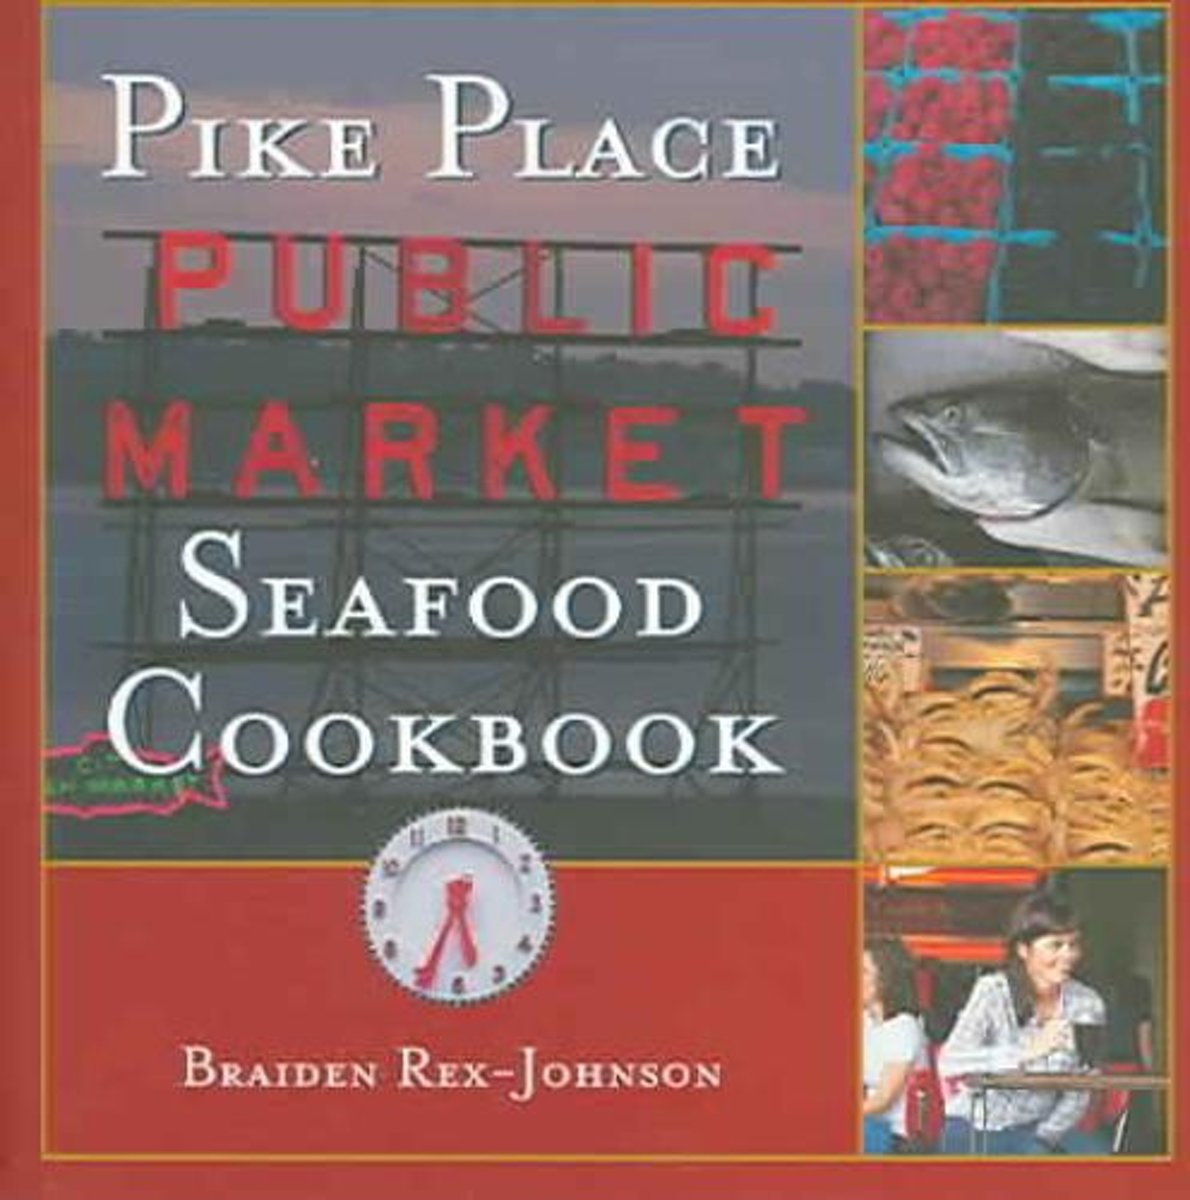 Pike Place Public Market Seafood